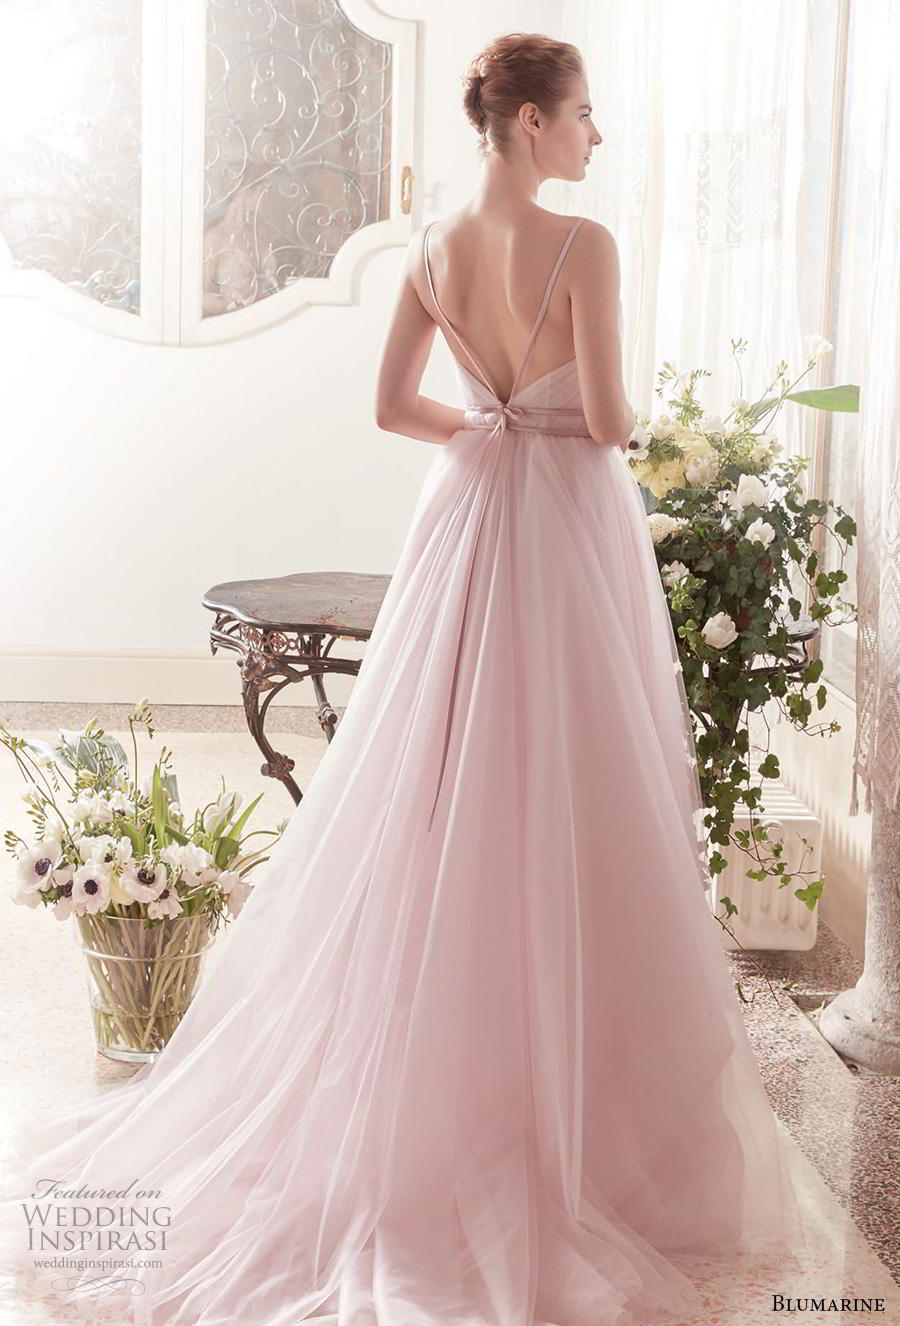 blumarine sposa 2019 bridal sleeveless thin strap sweetheart neckline ruched bodice tulle skirt romantic pink a  linw wedding dress open v back medium train (1) bv